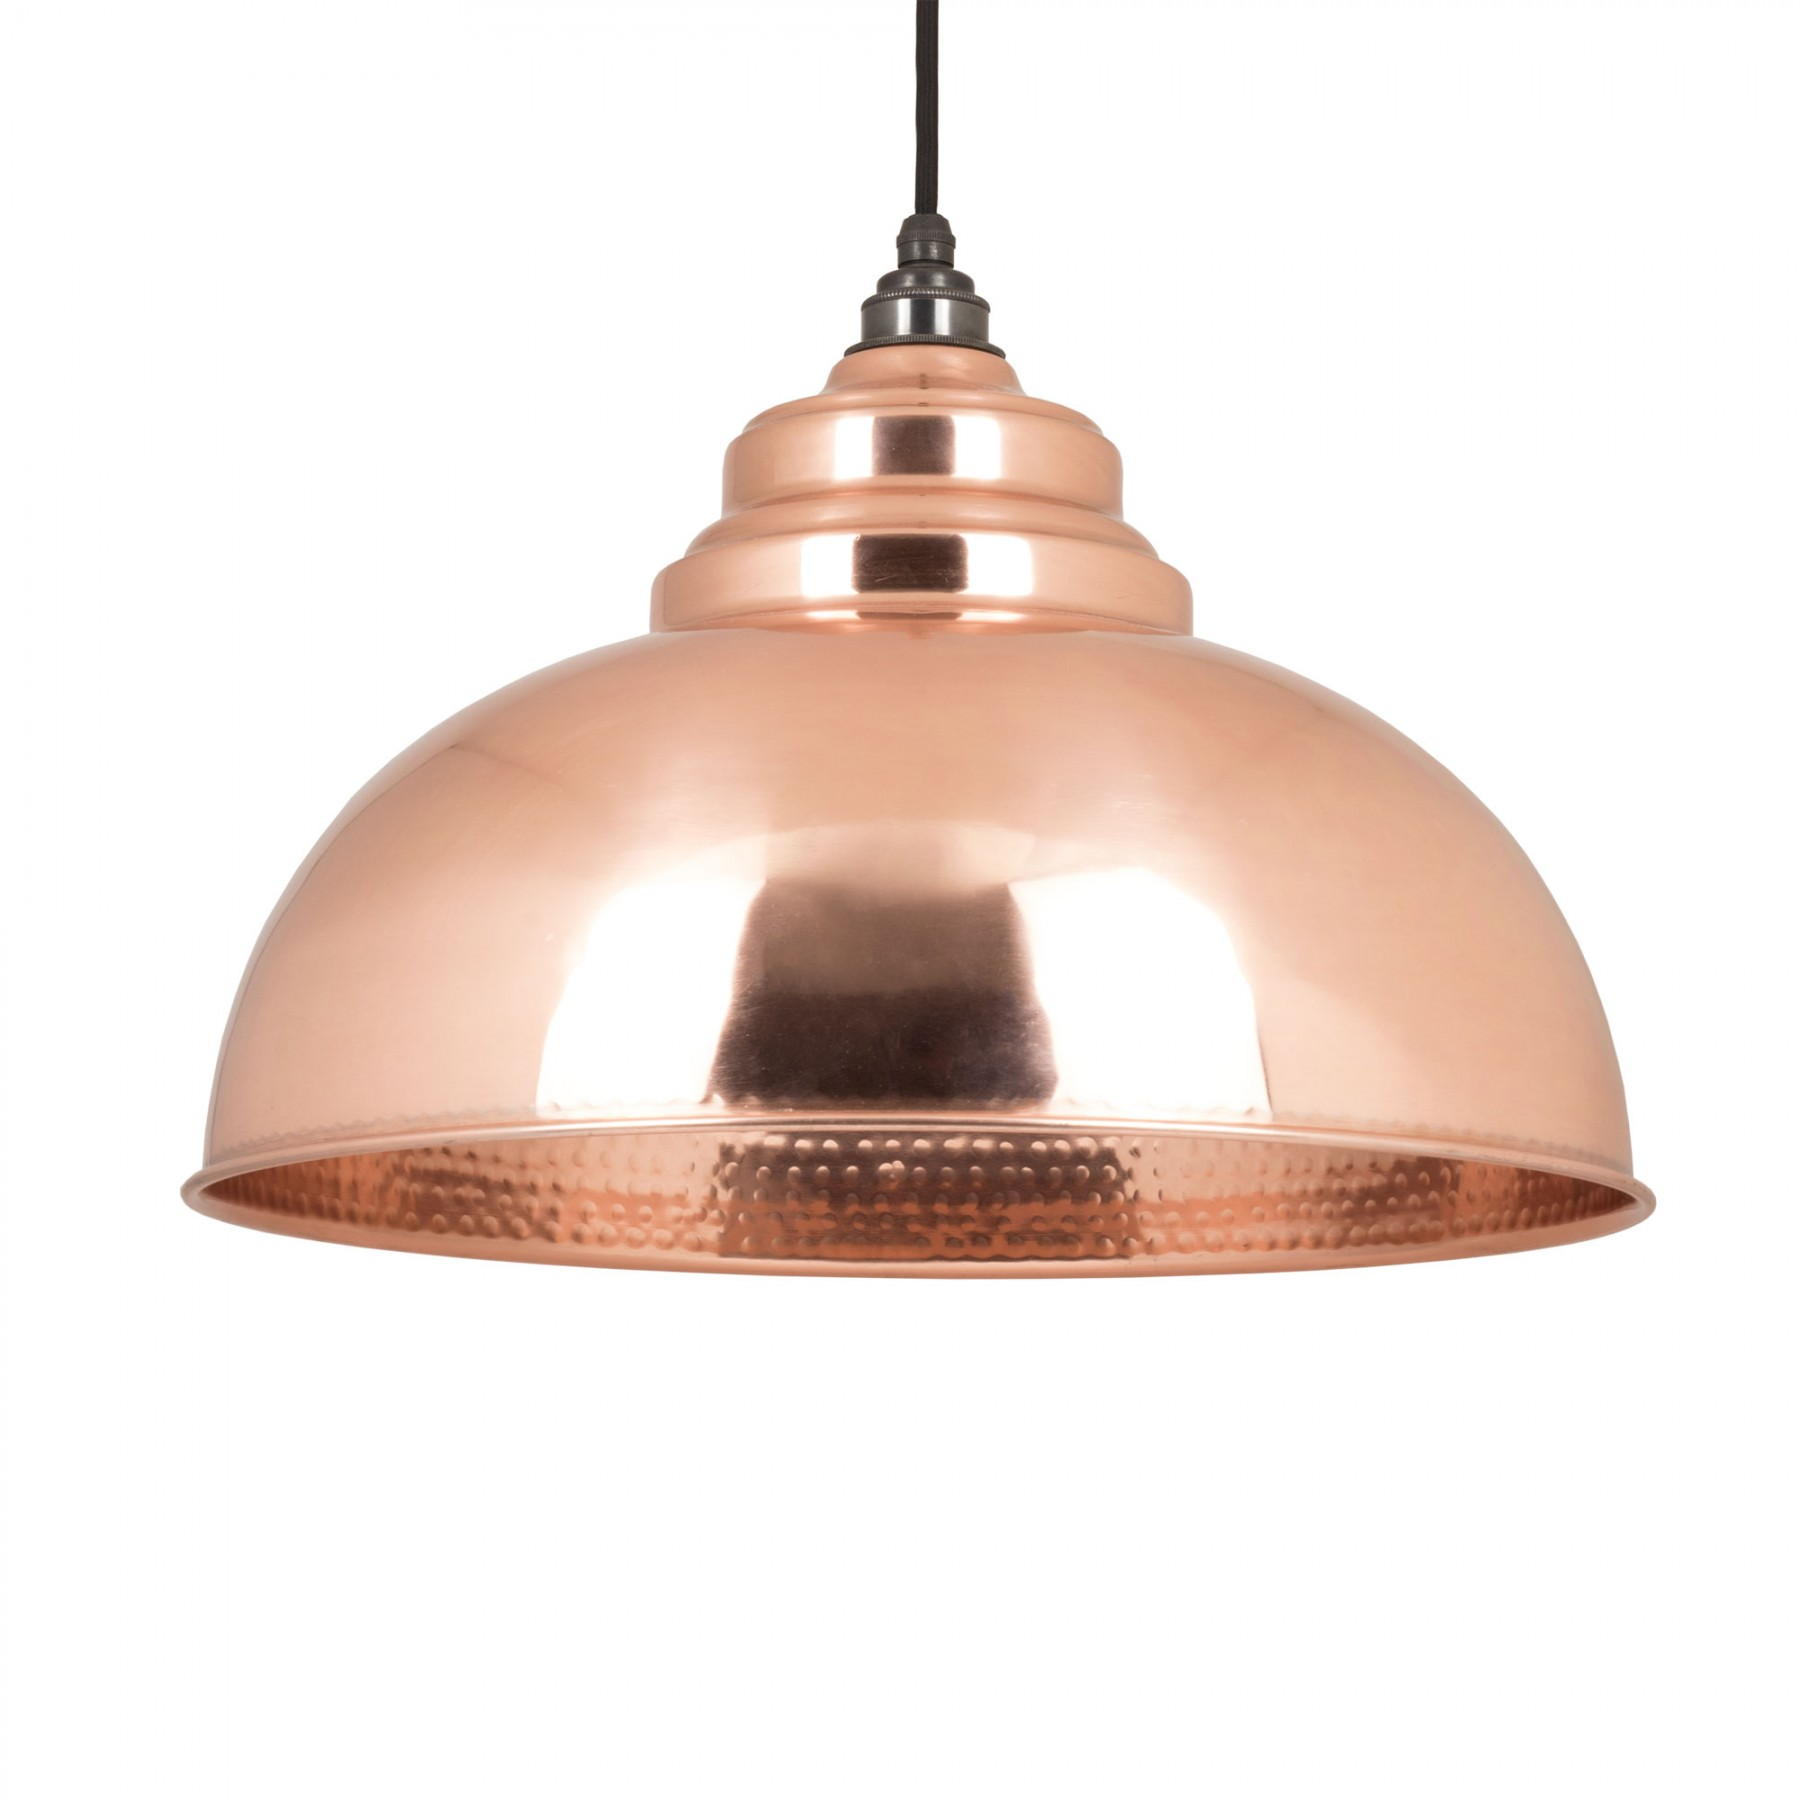 Harborne Pendant Light In Hammered Copper Period Home Style